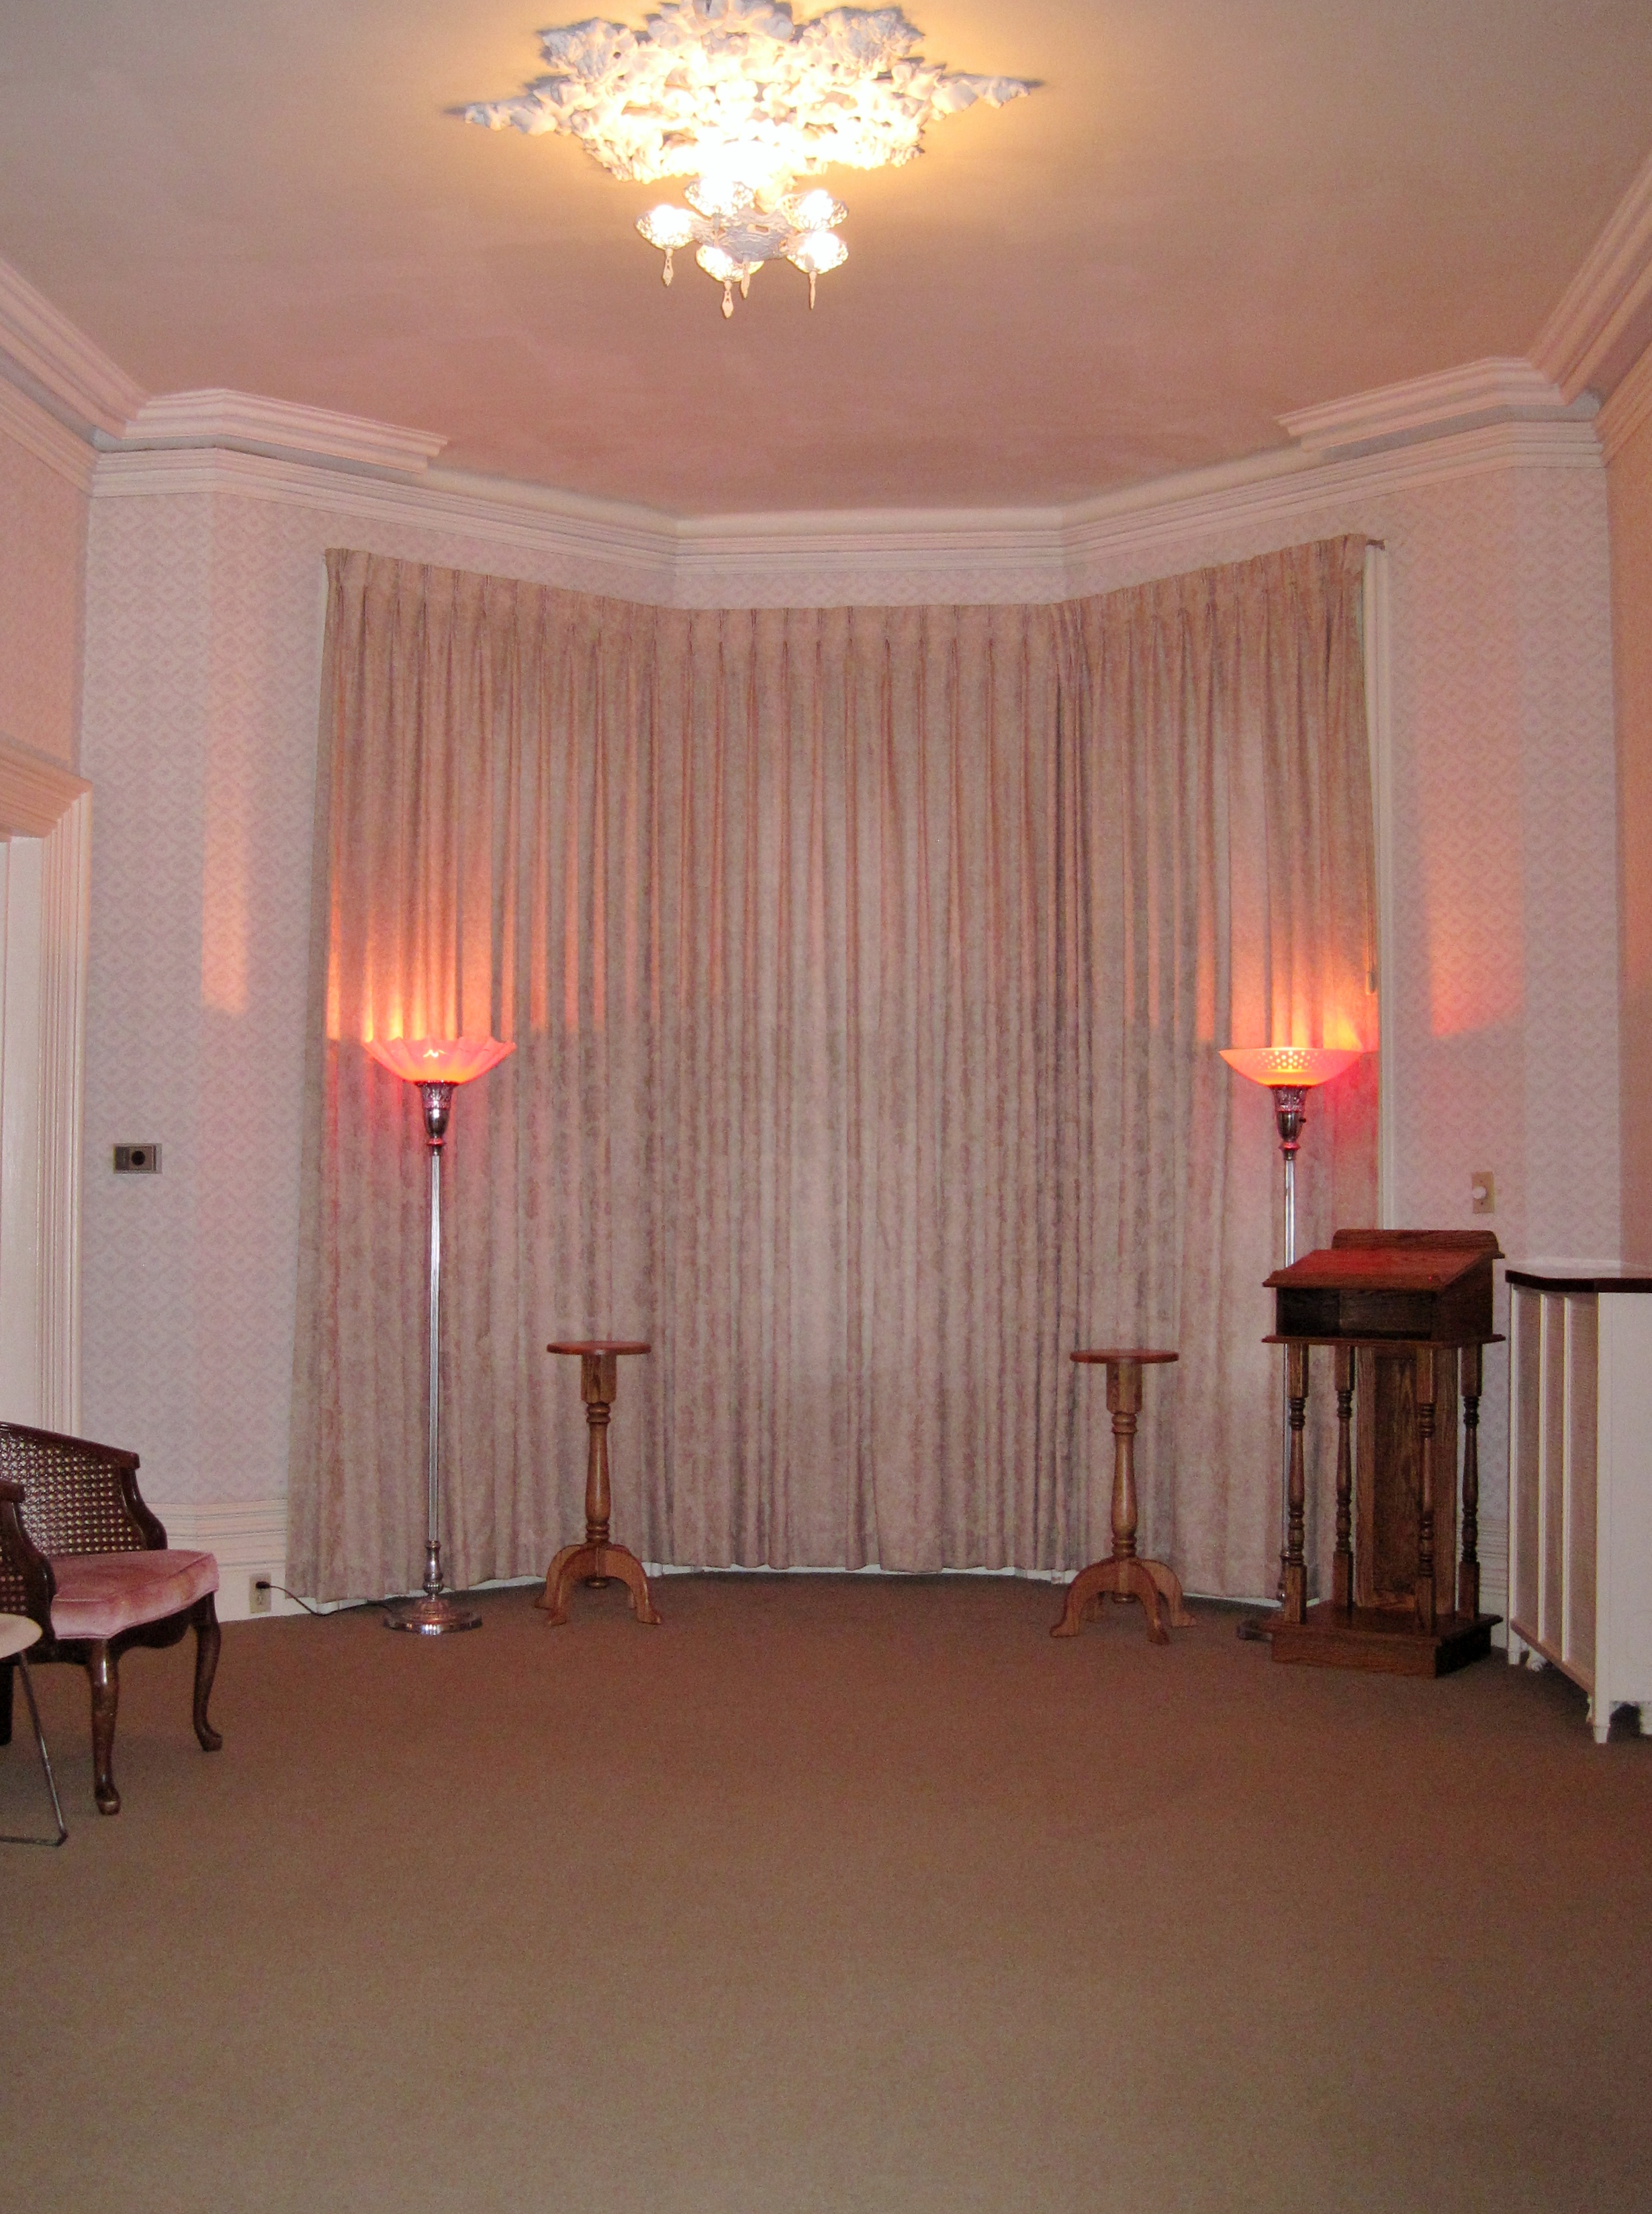 Middle Visitation Room